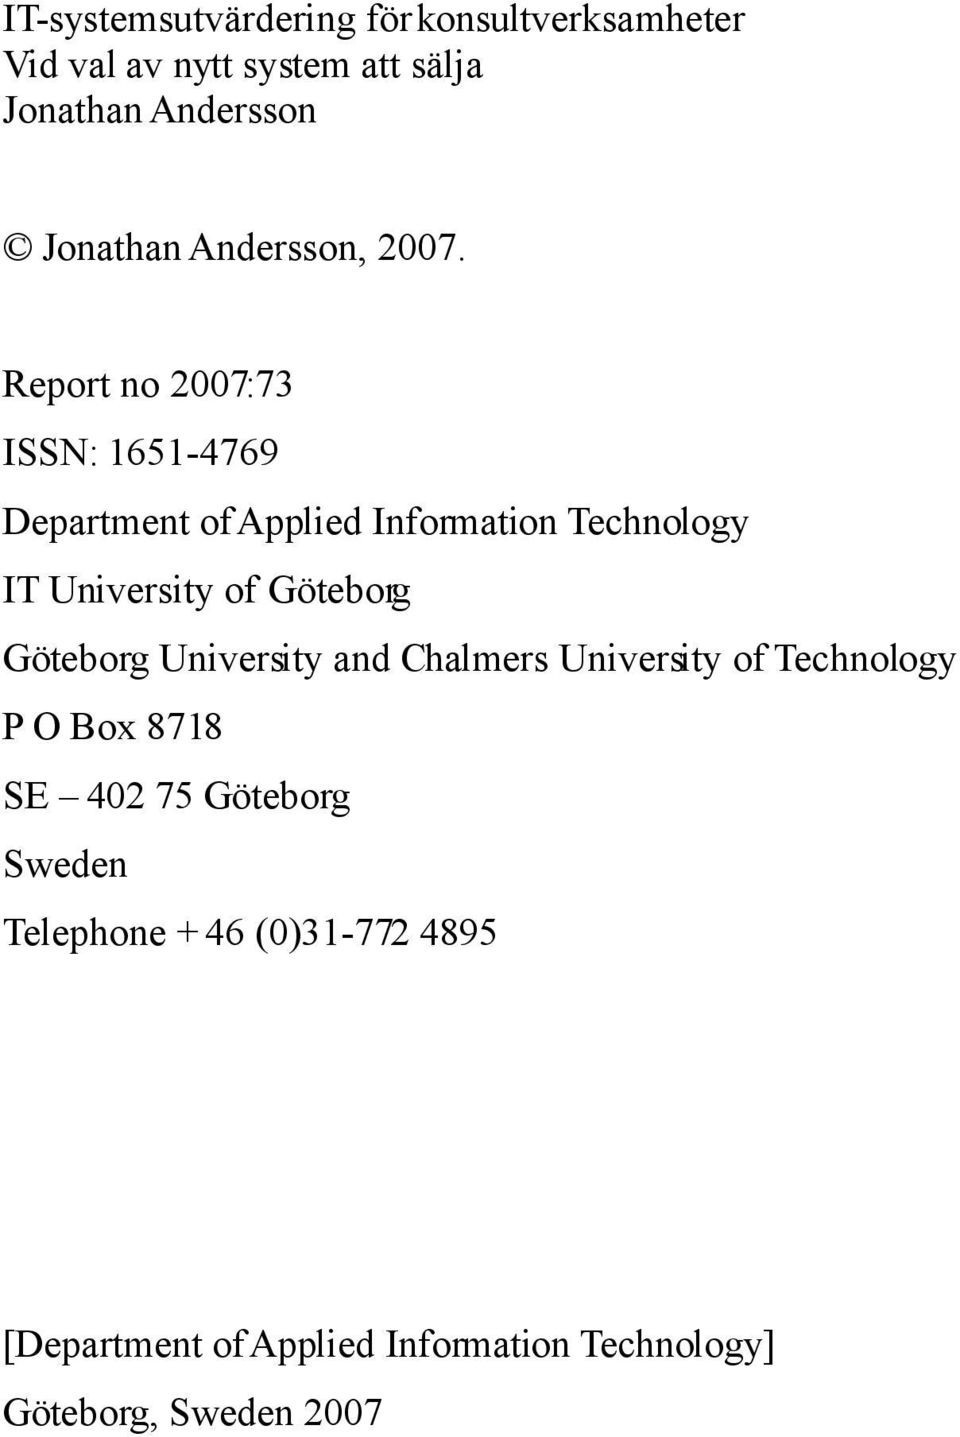 Report no 2007:73 ISSN: 1651-4769 Department of Applied Information Technology IT University of Göteborg